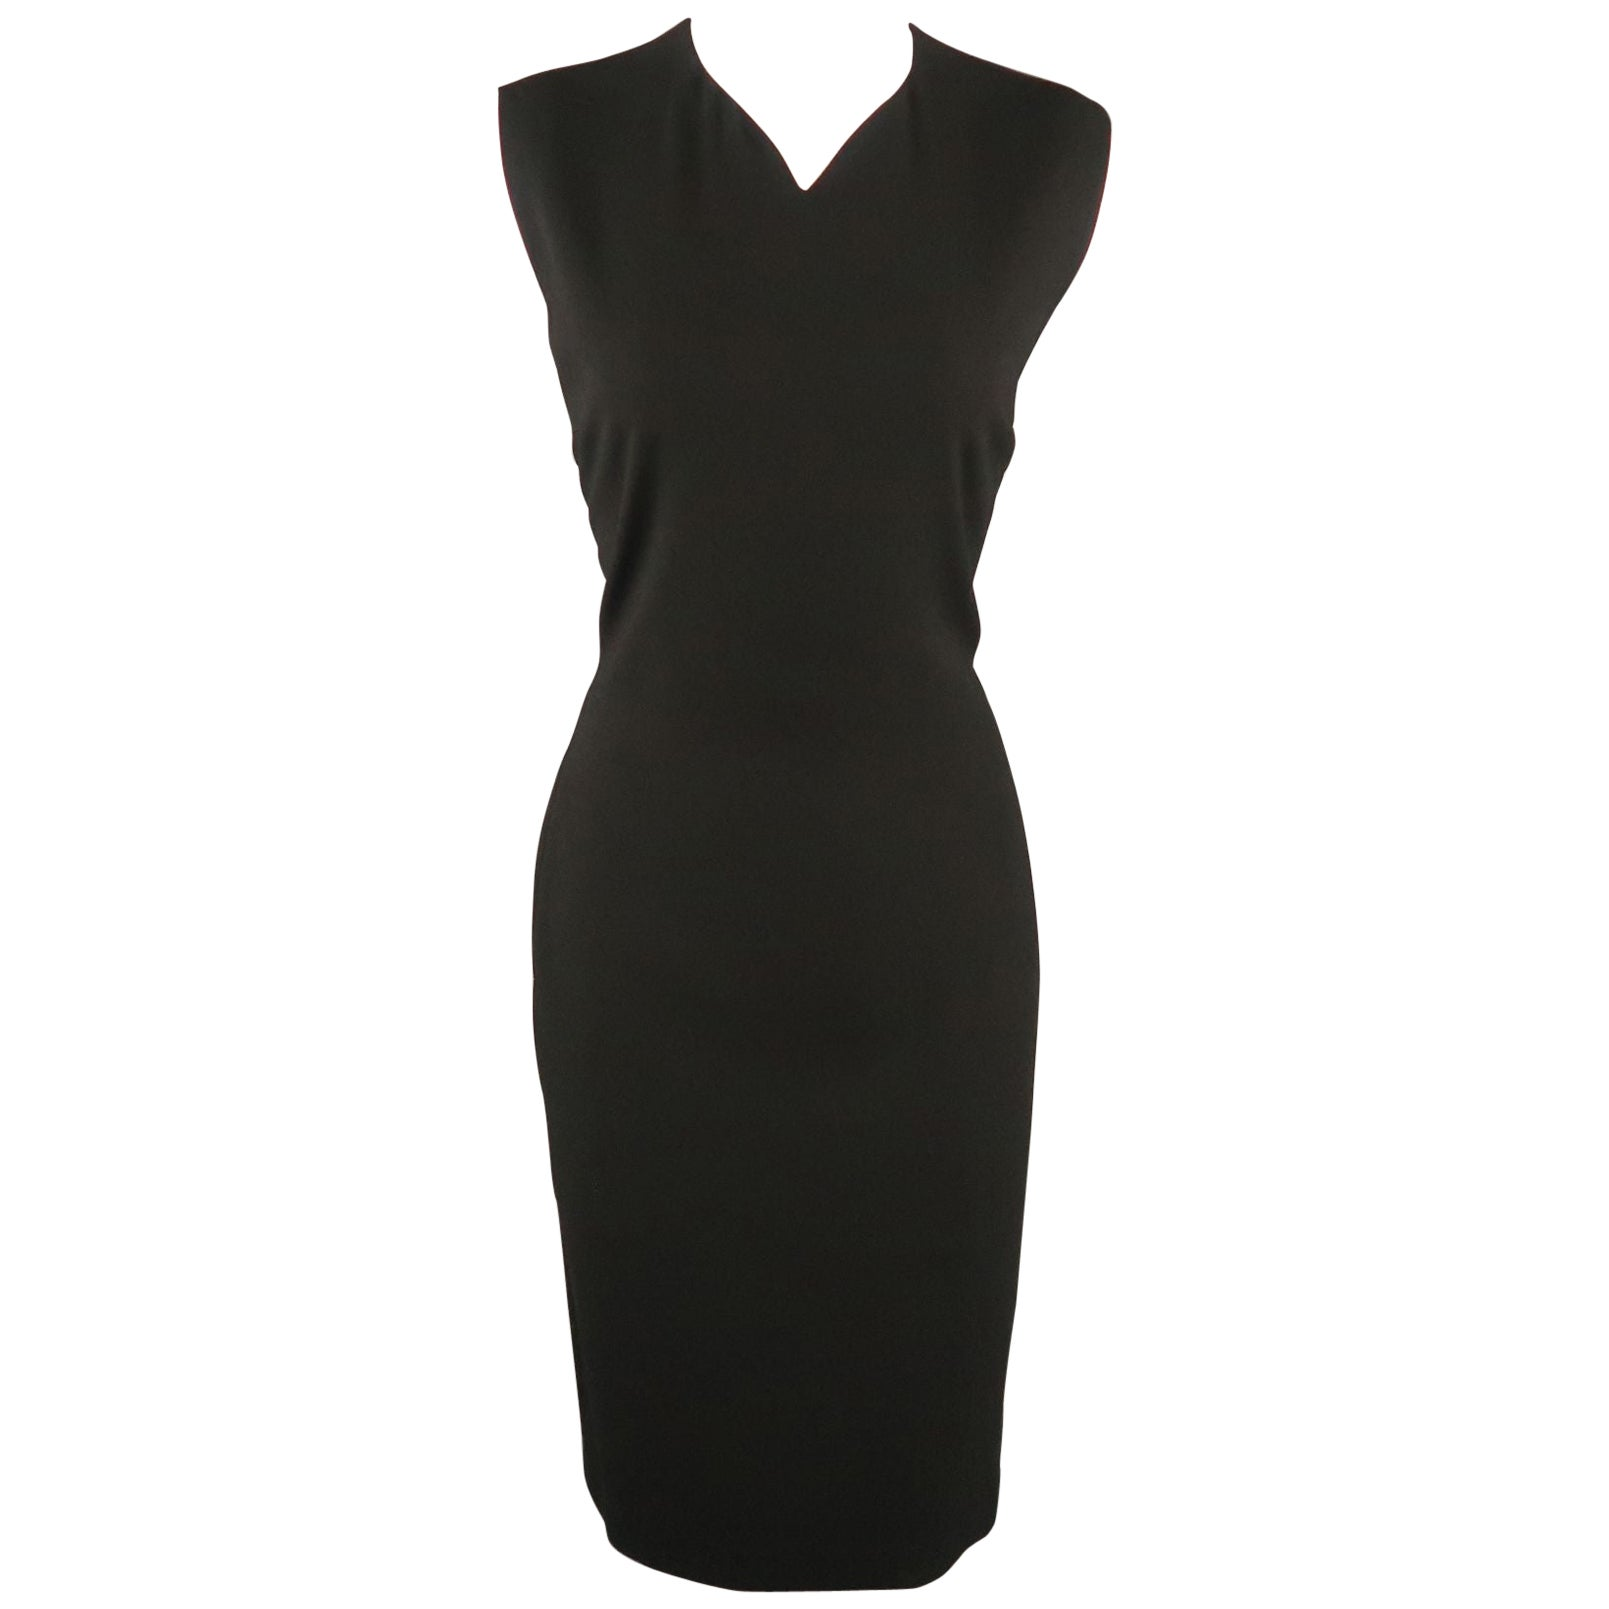 JIL SANDER Size 8 Black Back Cutouts V Neck Sleeveless Shift Dress